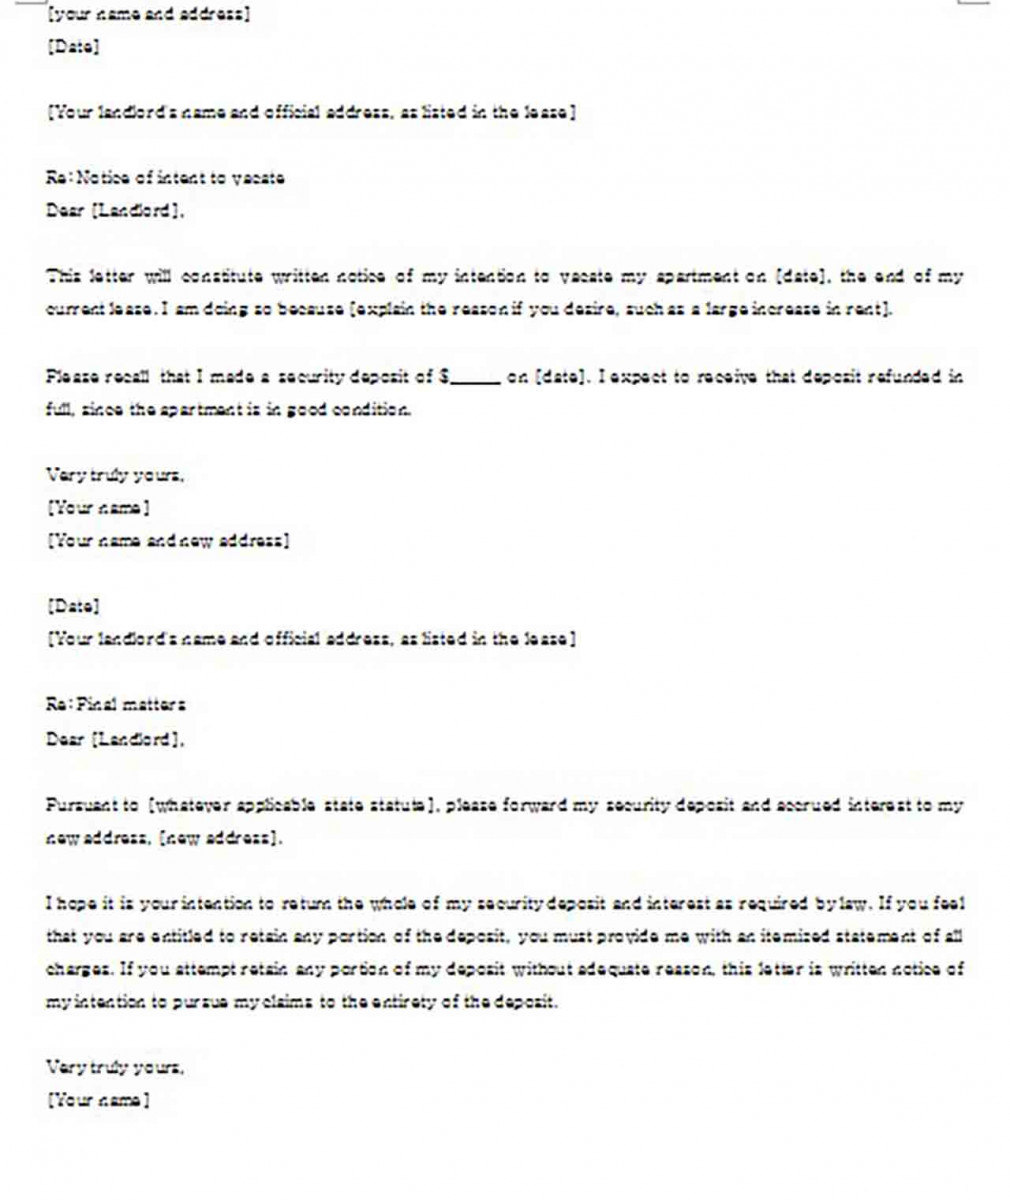 Lease Termination Letter to Landlord Sample